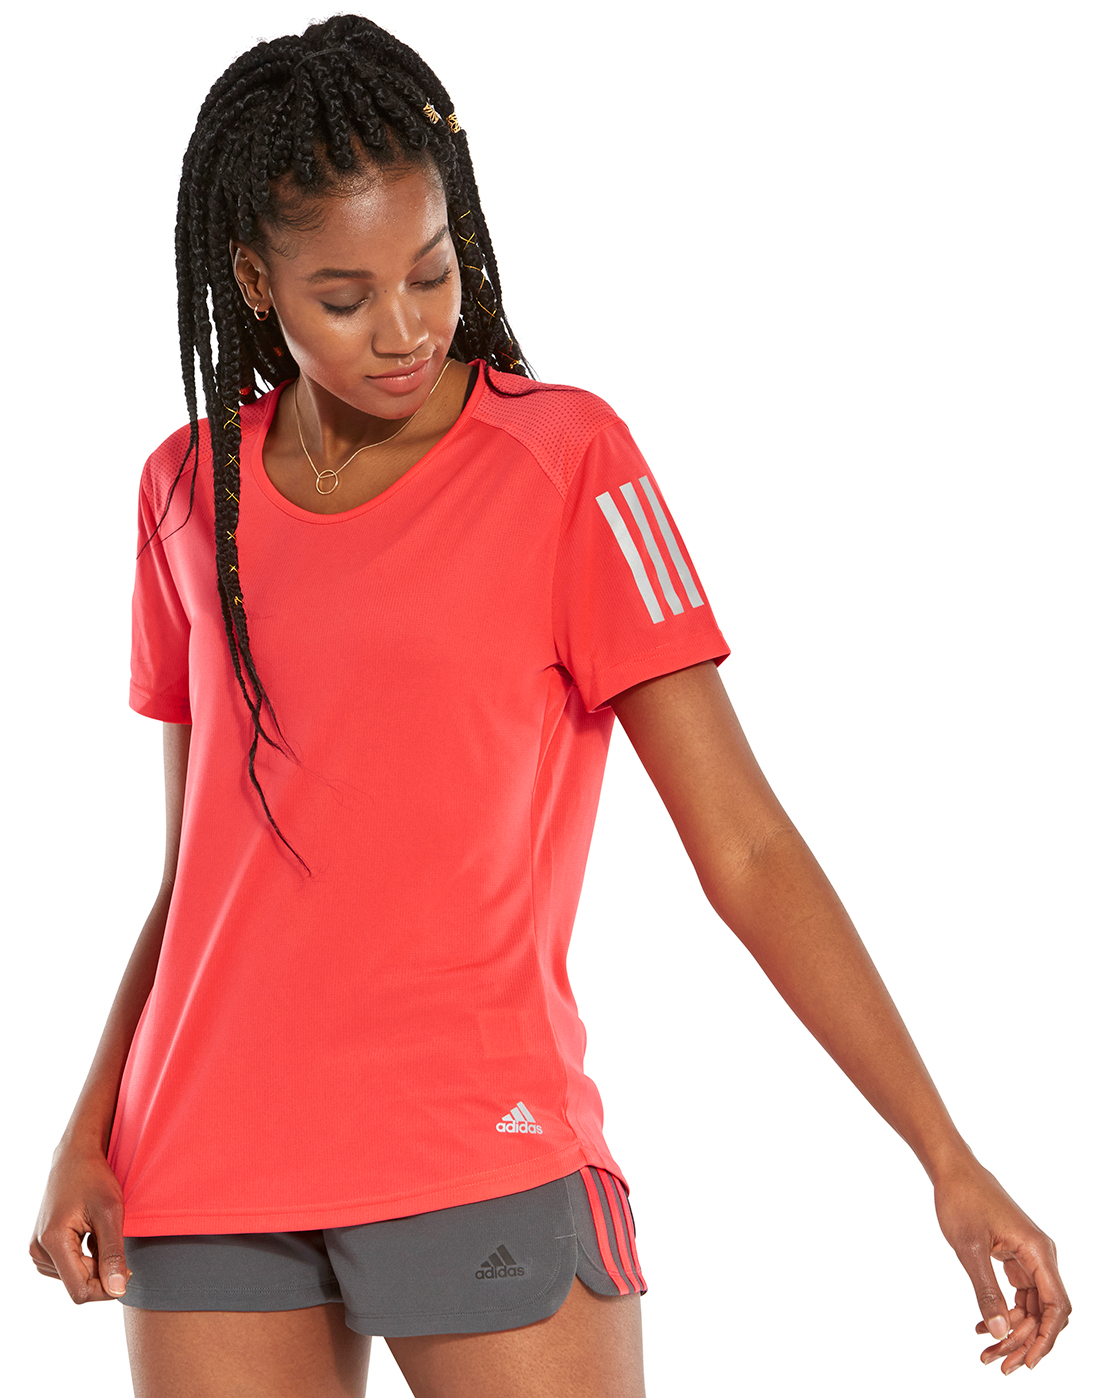 9ccf9a497 Women's Red adidas Gym T-Shirt | Life Style Sports